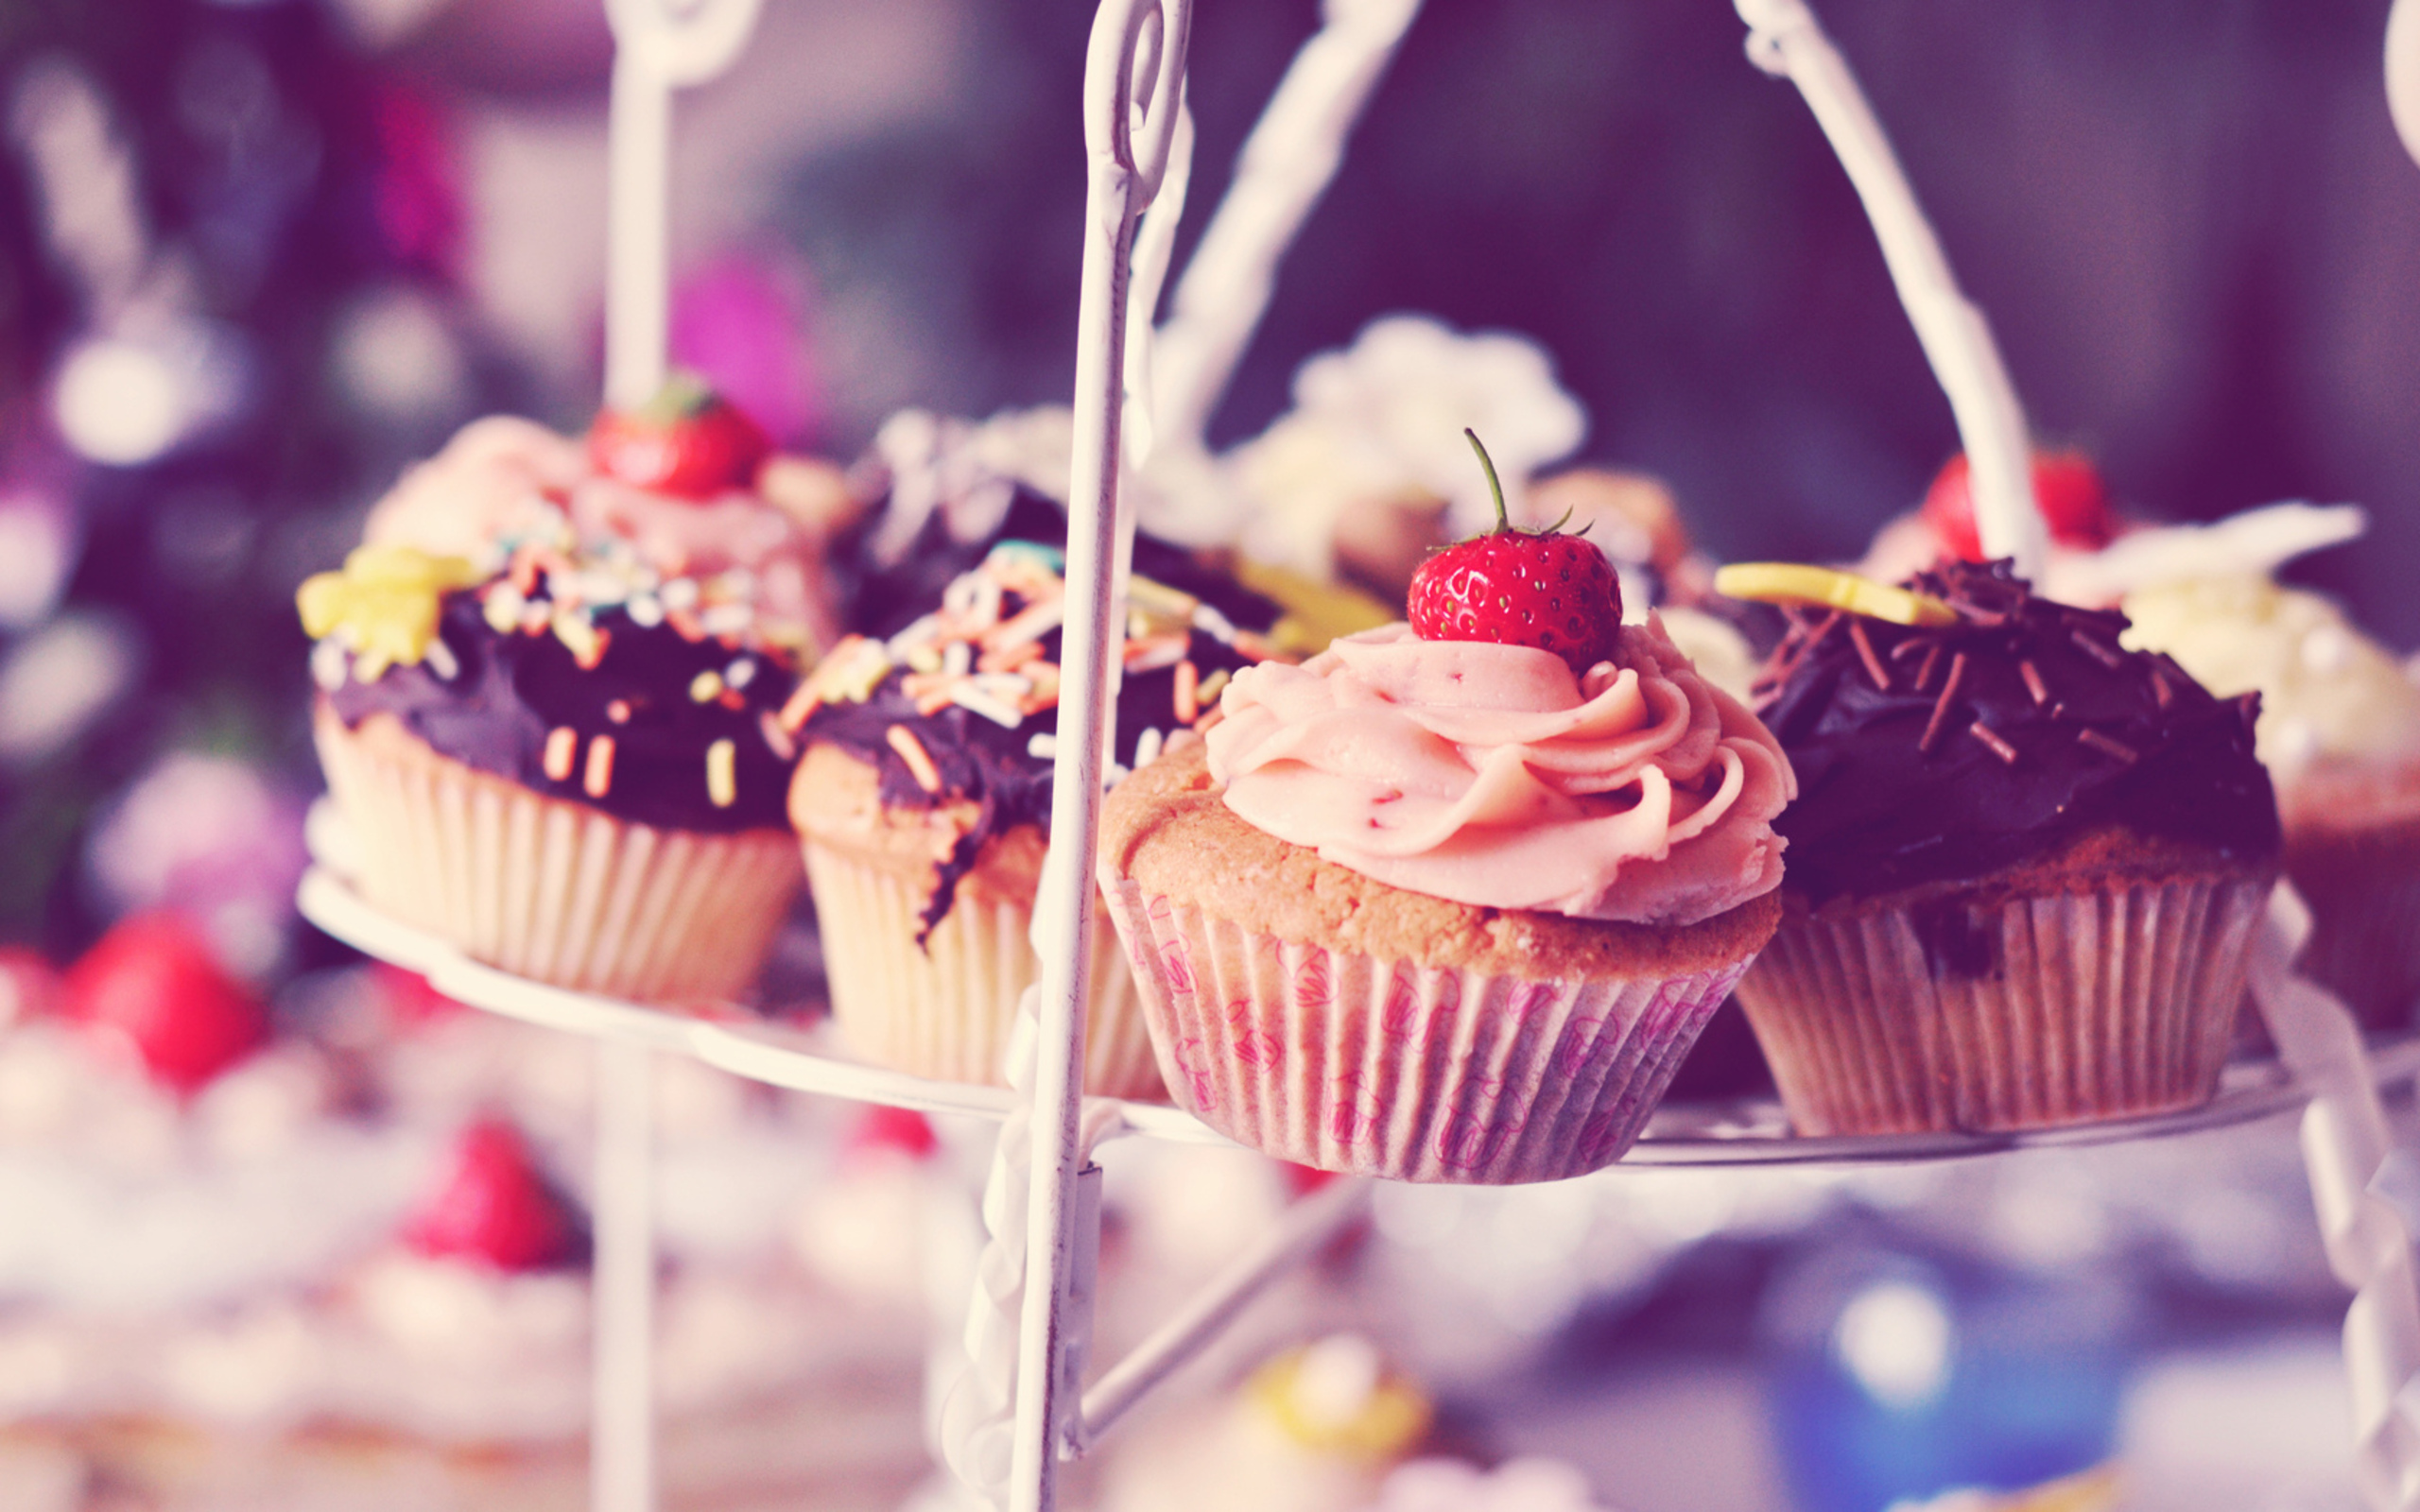 186 Cupcake HD Wallpapers Backgrounds 2560x1600